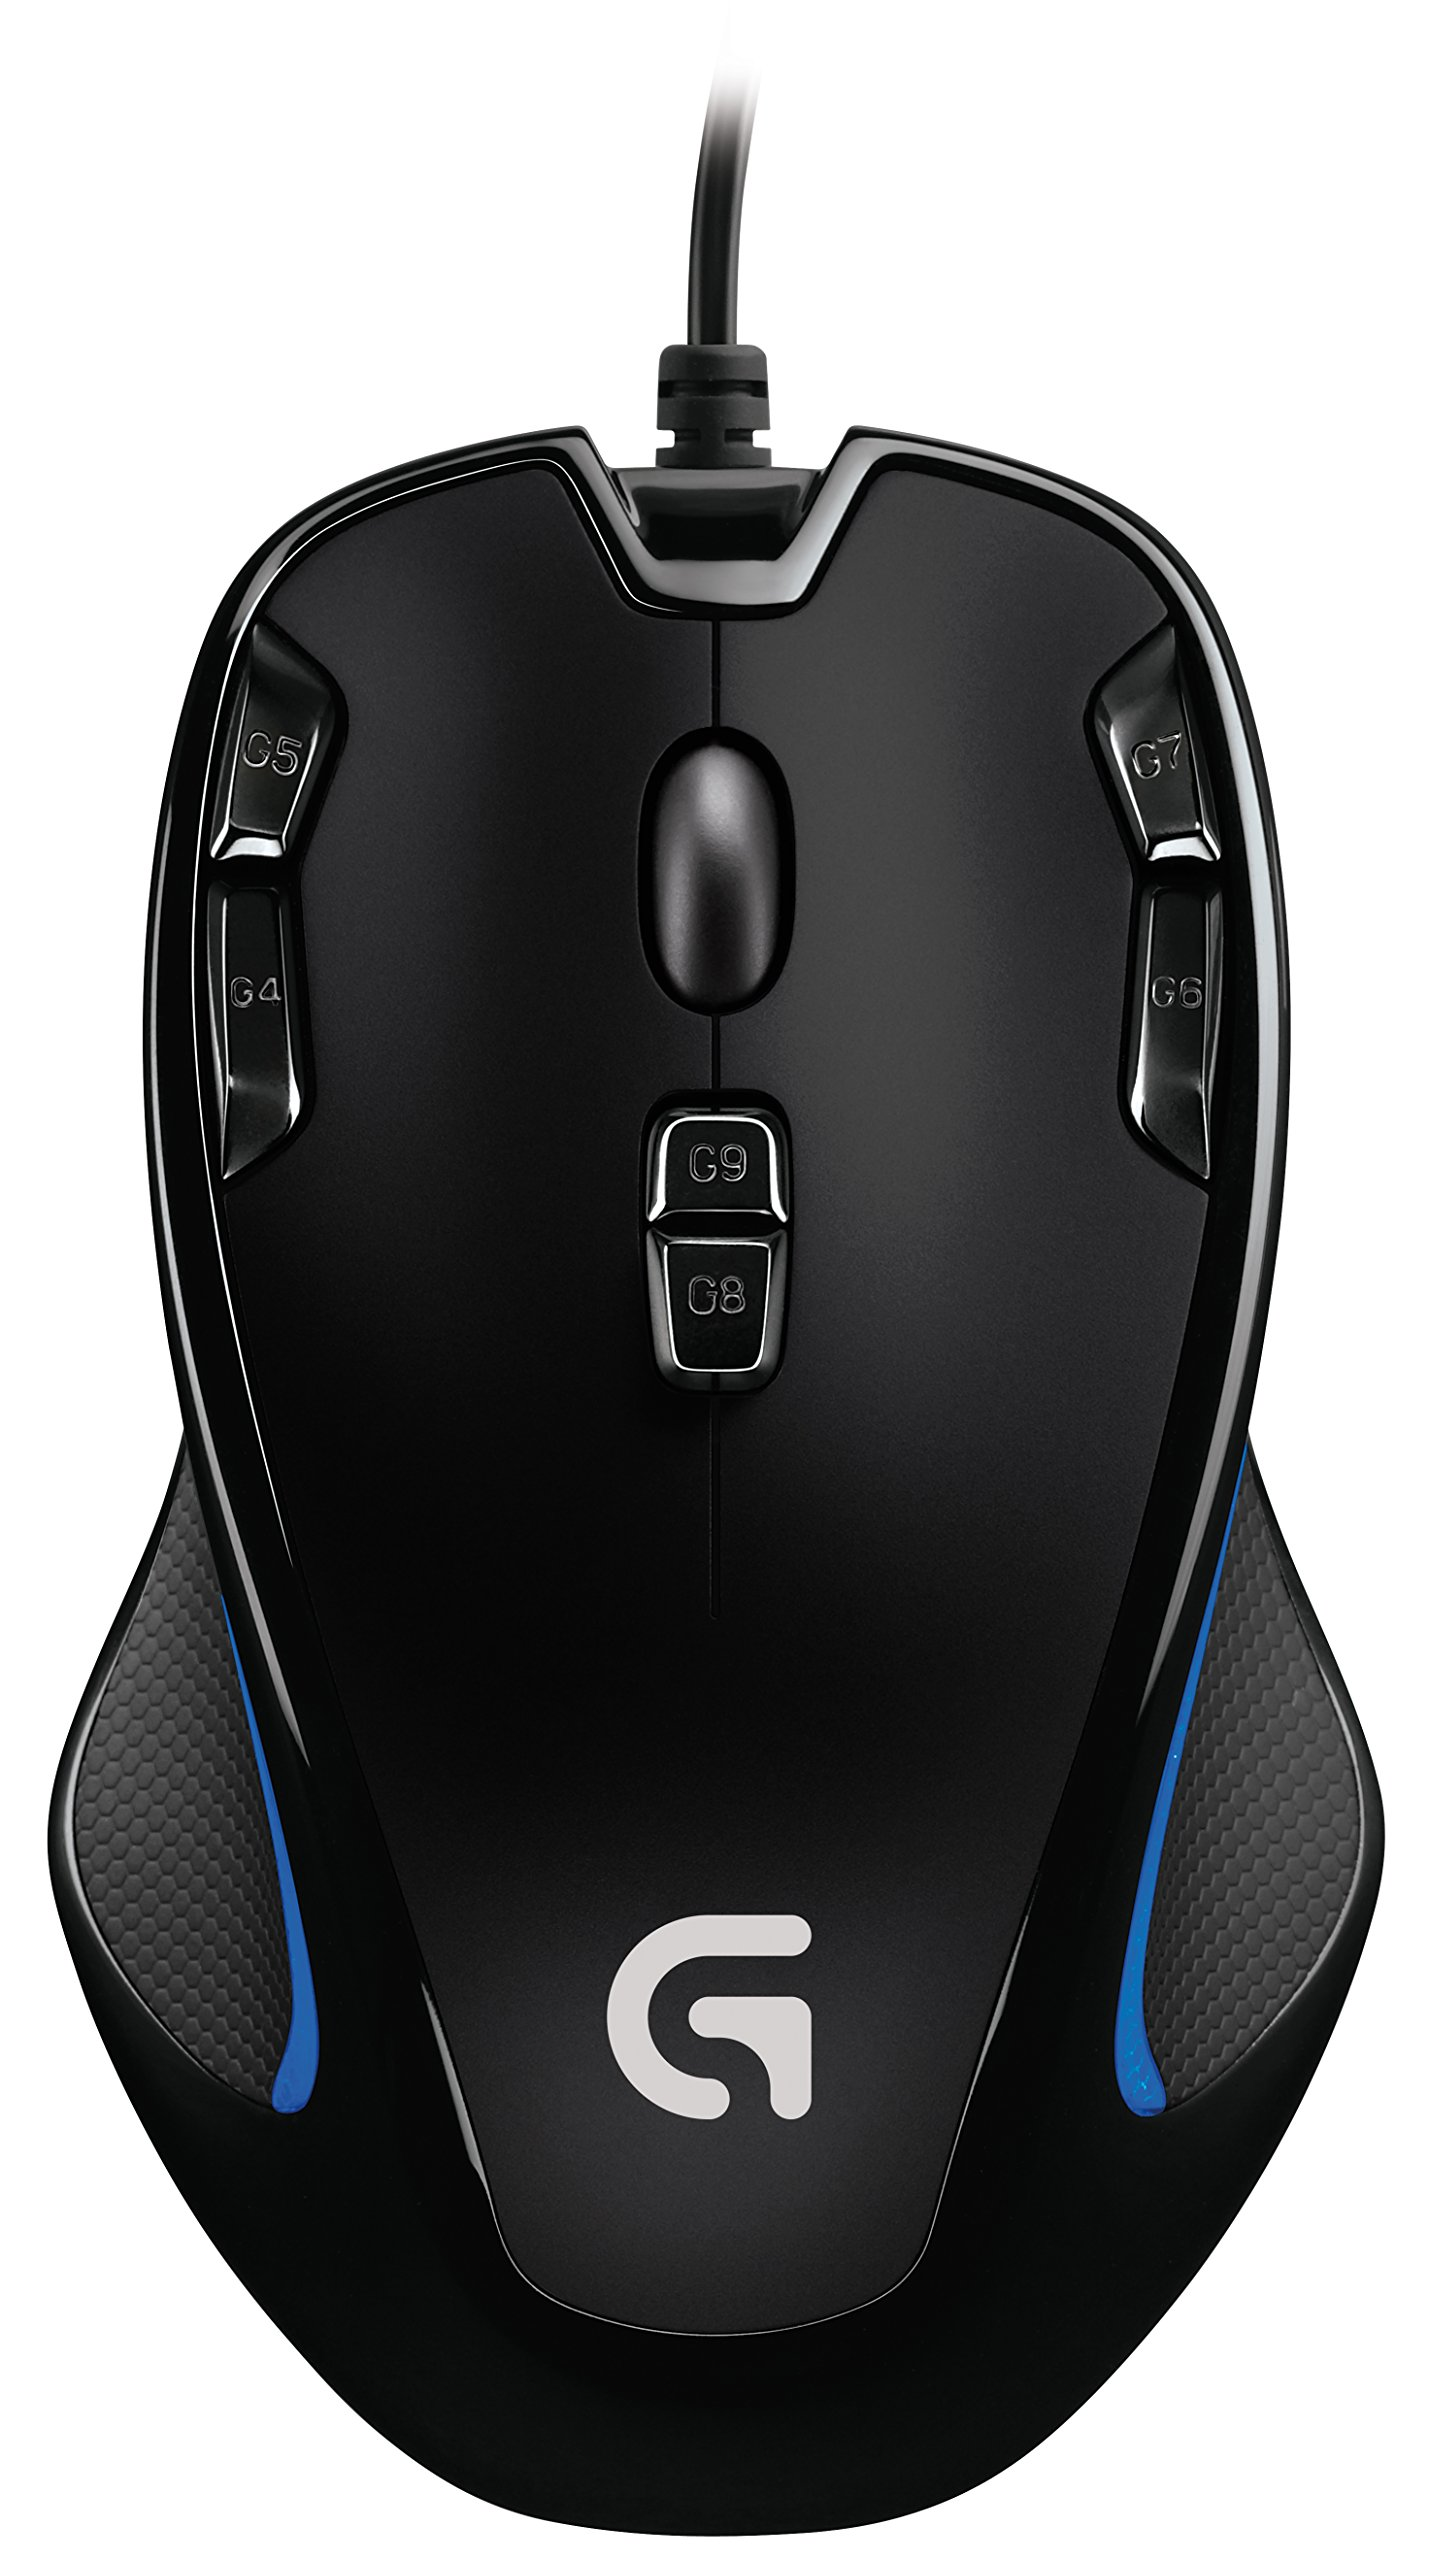 로지텍 G300s 옵티컬 게이밍 마우스 Logitech G300s Optical Ambidextrous Gaming Mouse – 9 Programmable Buttons, Onboard Memory